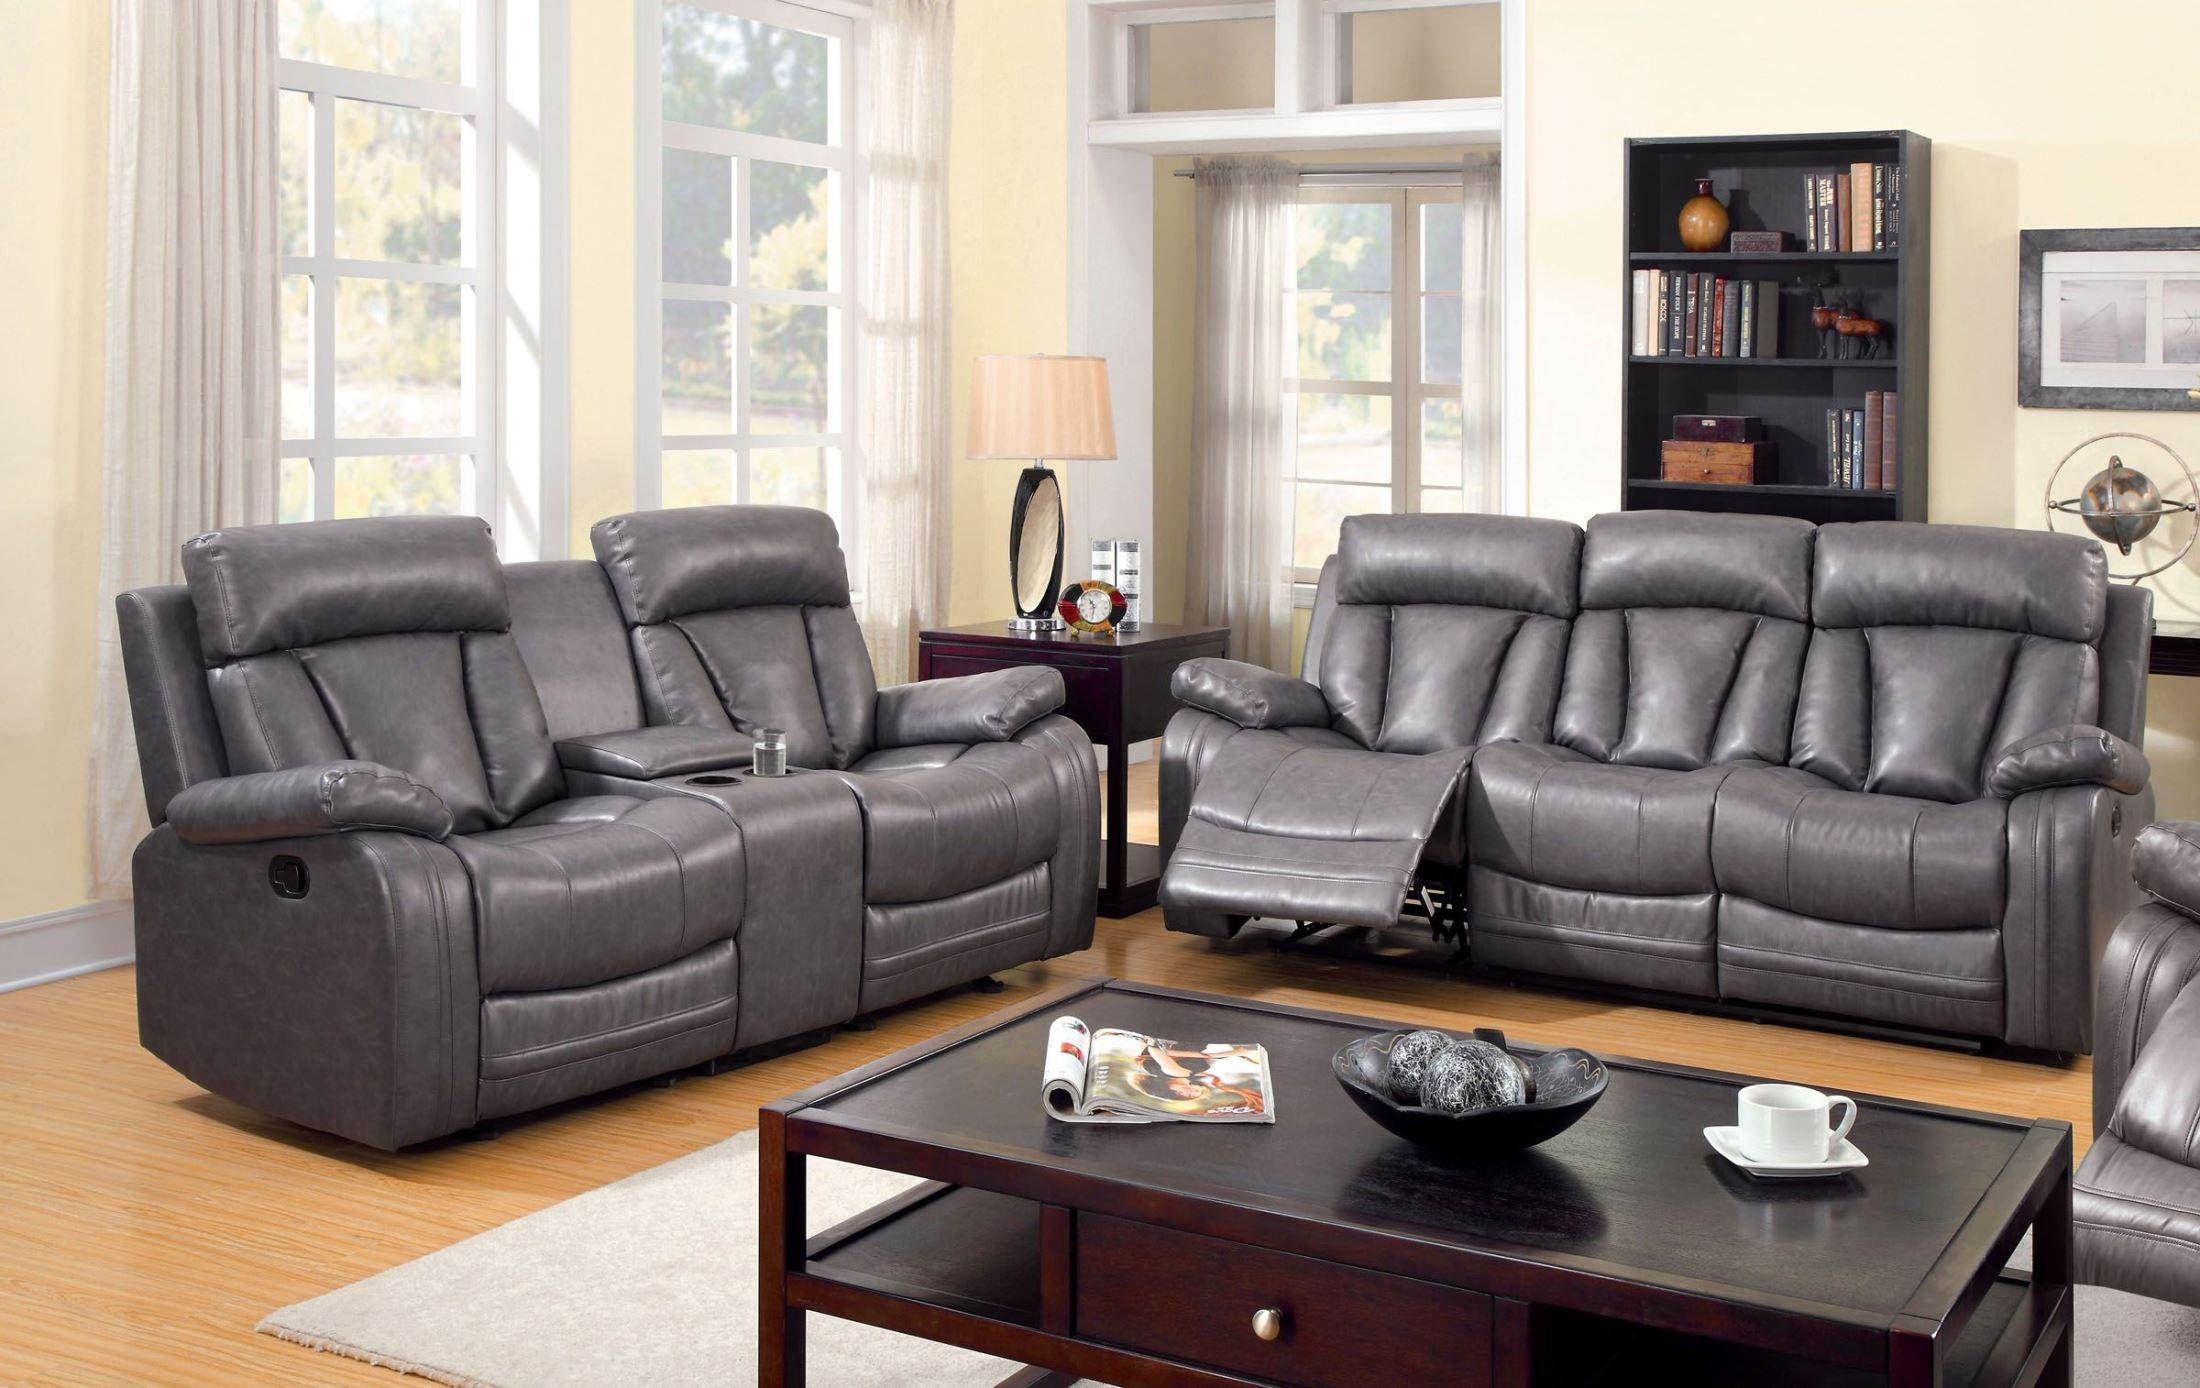 guilford gray bonded leather reclining living room set from furniture of america cm6976sf. Black Bedroom Furniture Sets. Home Design Ideas